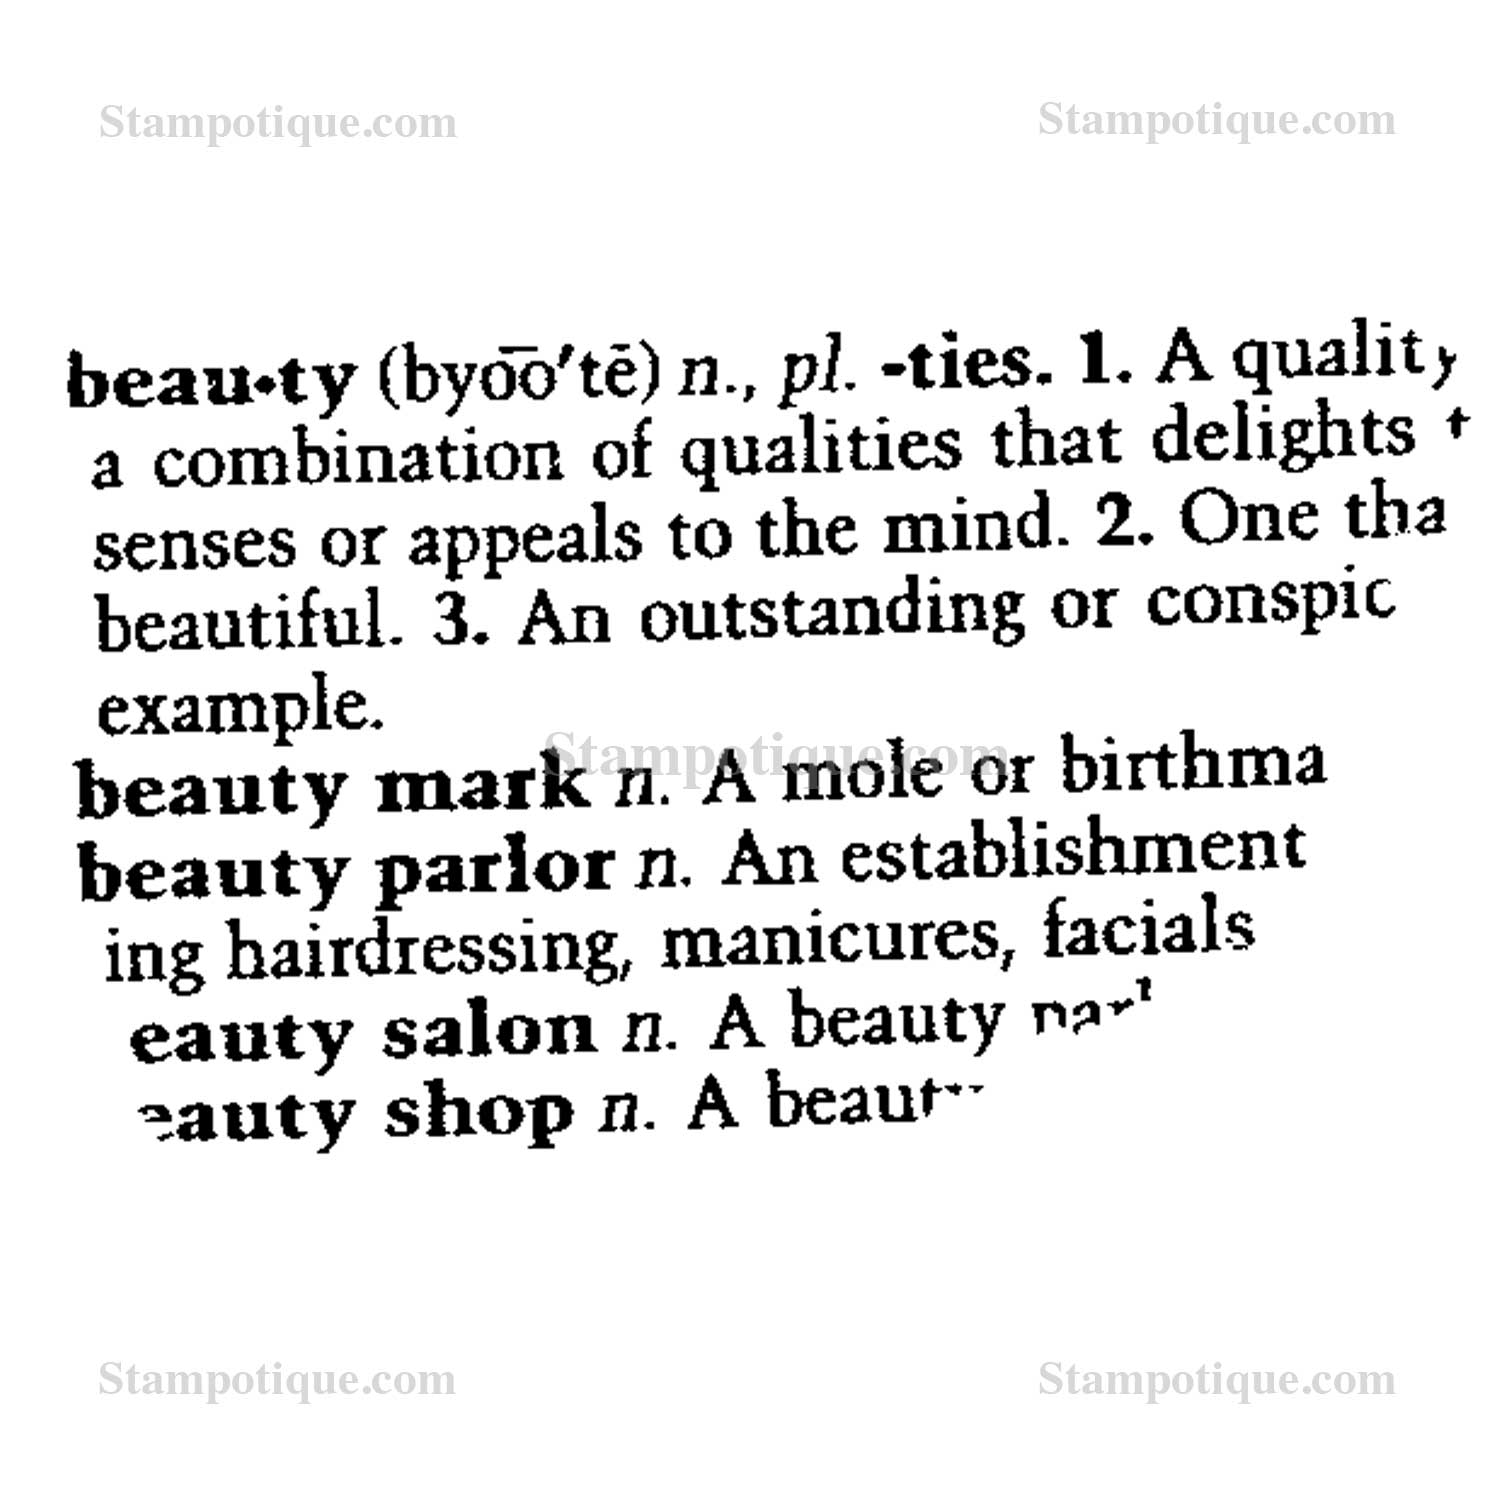 005 Essay Example 7070p Beauty Definition What Top Is Short Inner Real Full